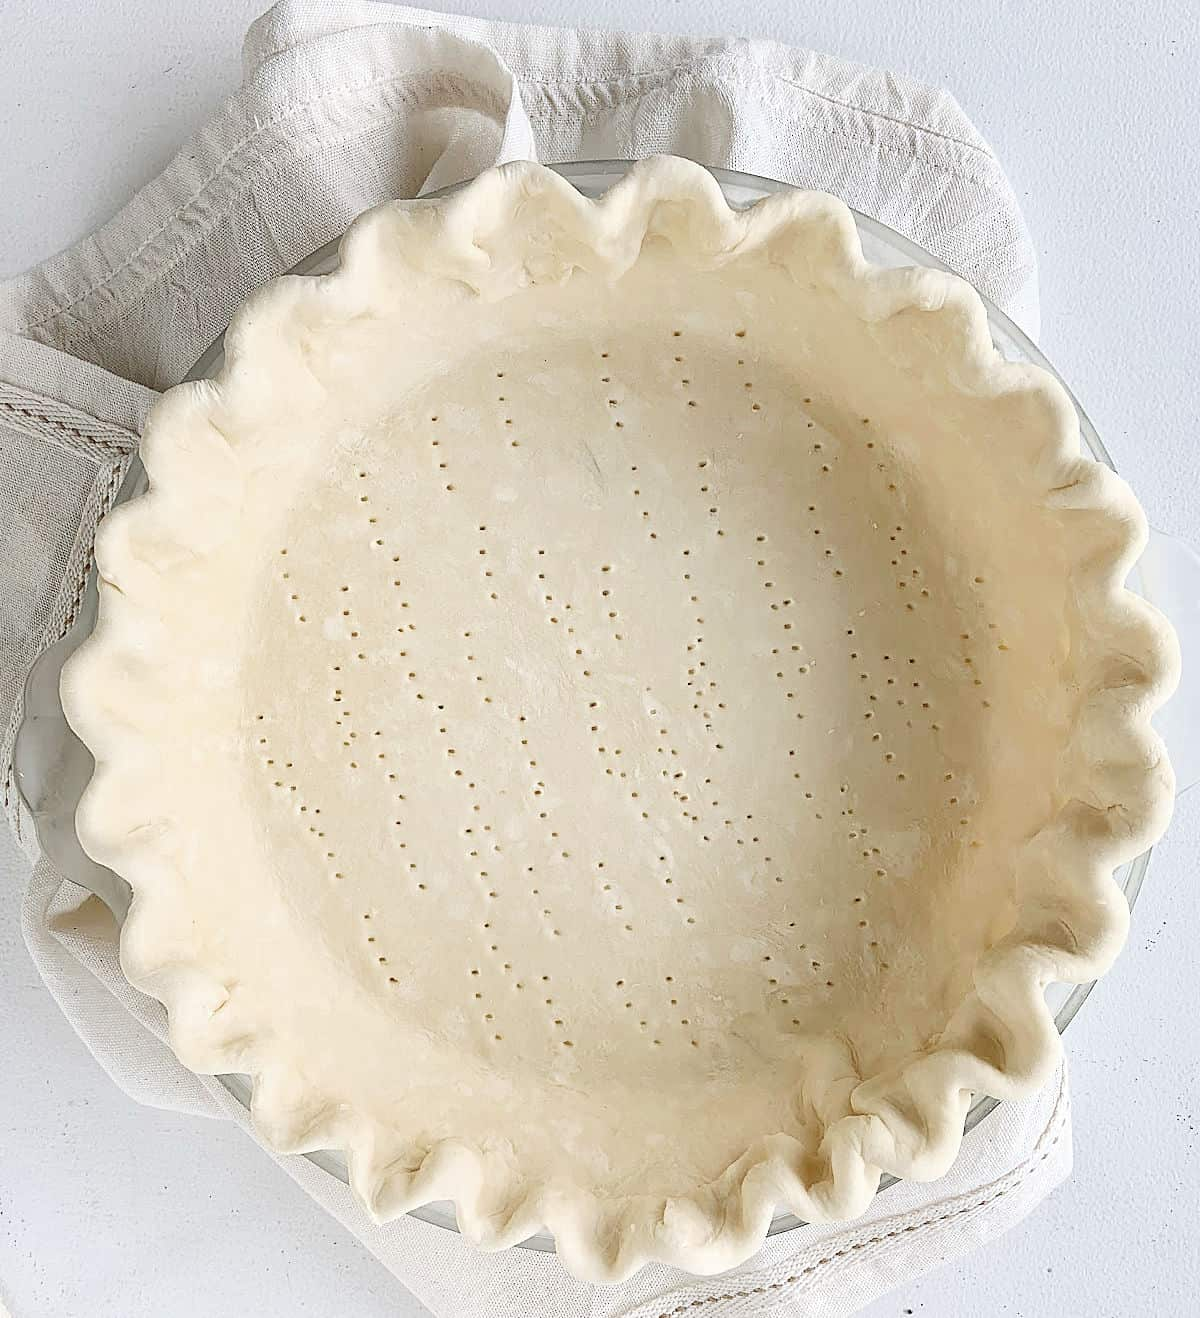 Unbaked whole pie shell with crimpled edges on a light beige cloth on a white table